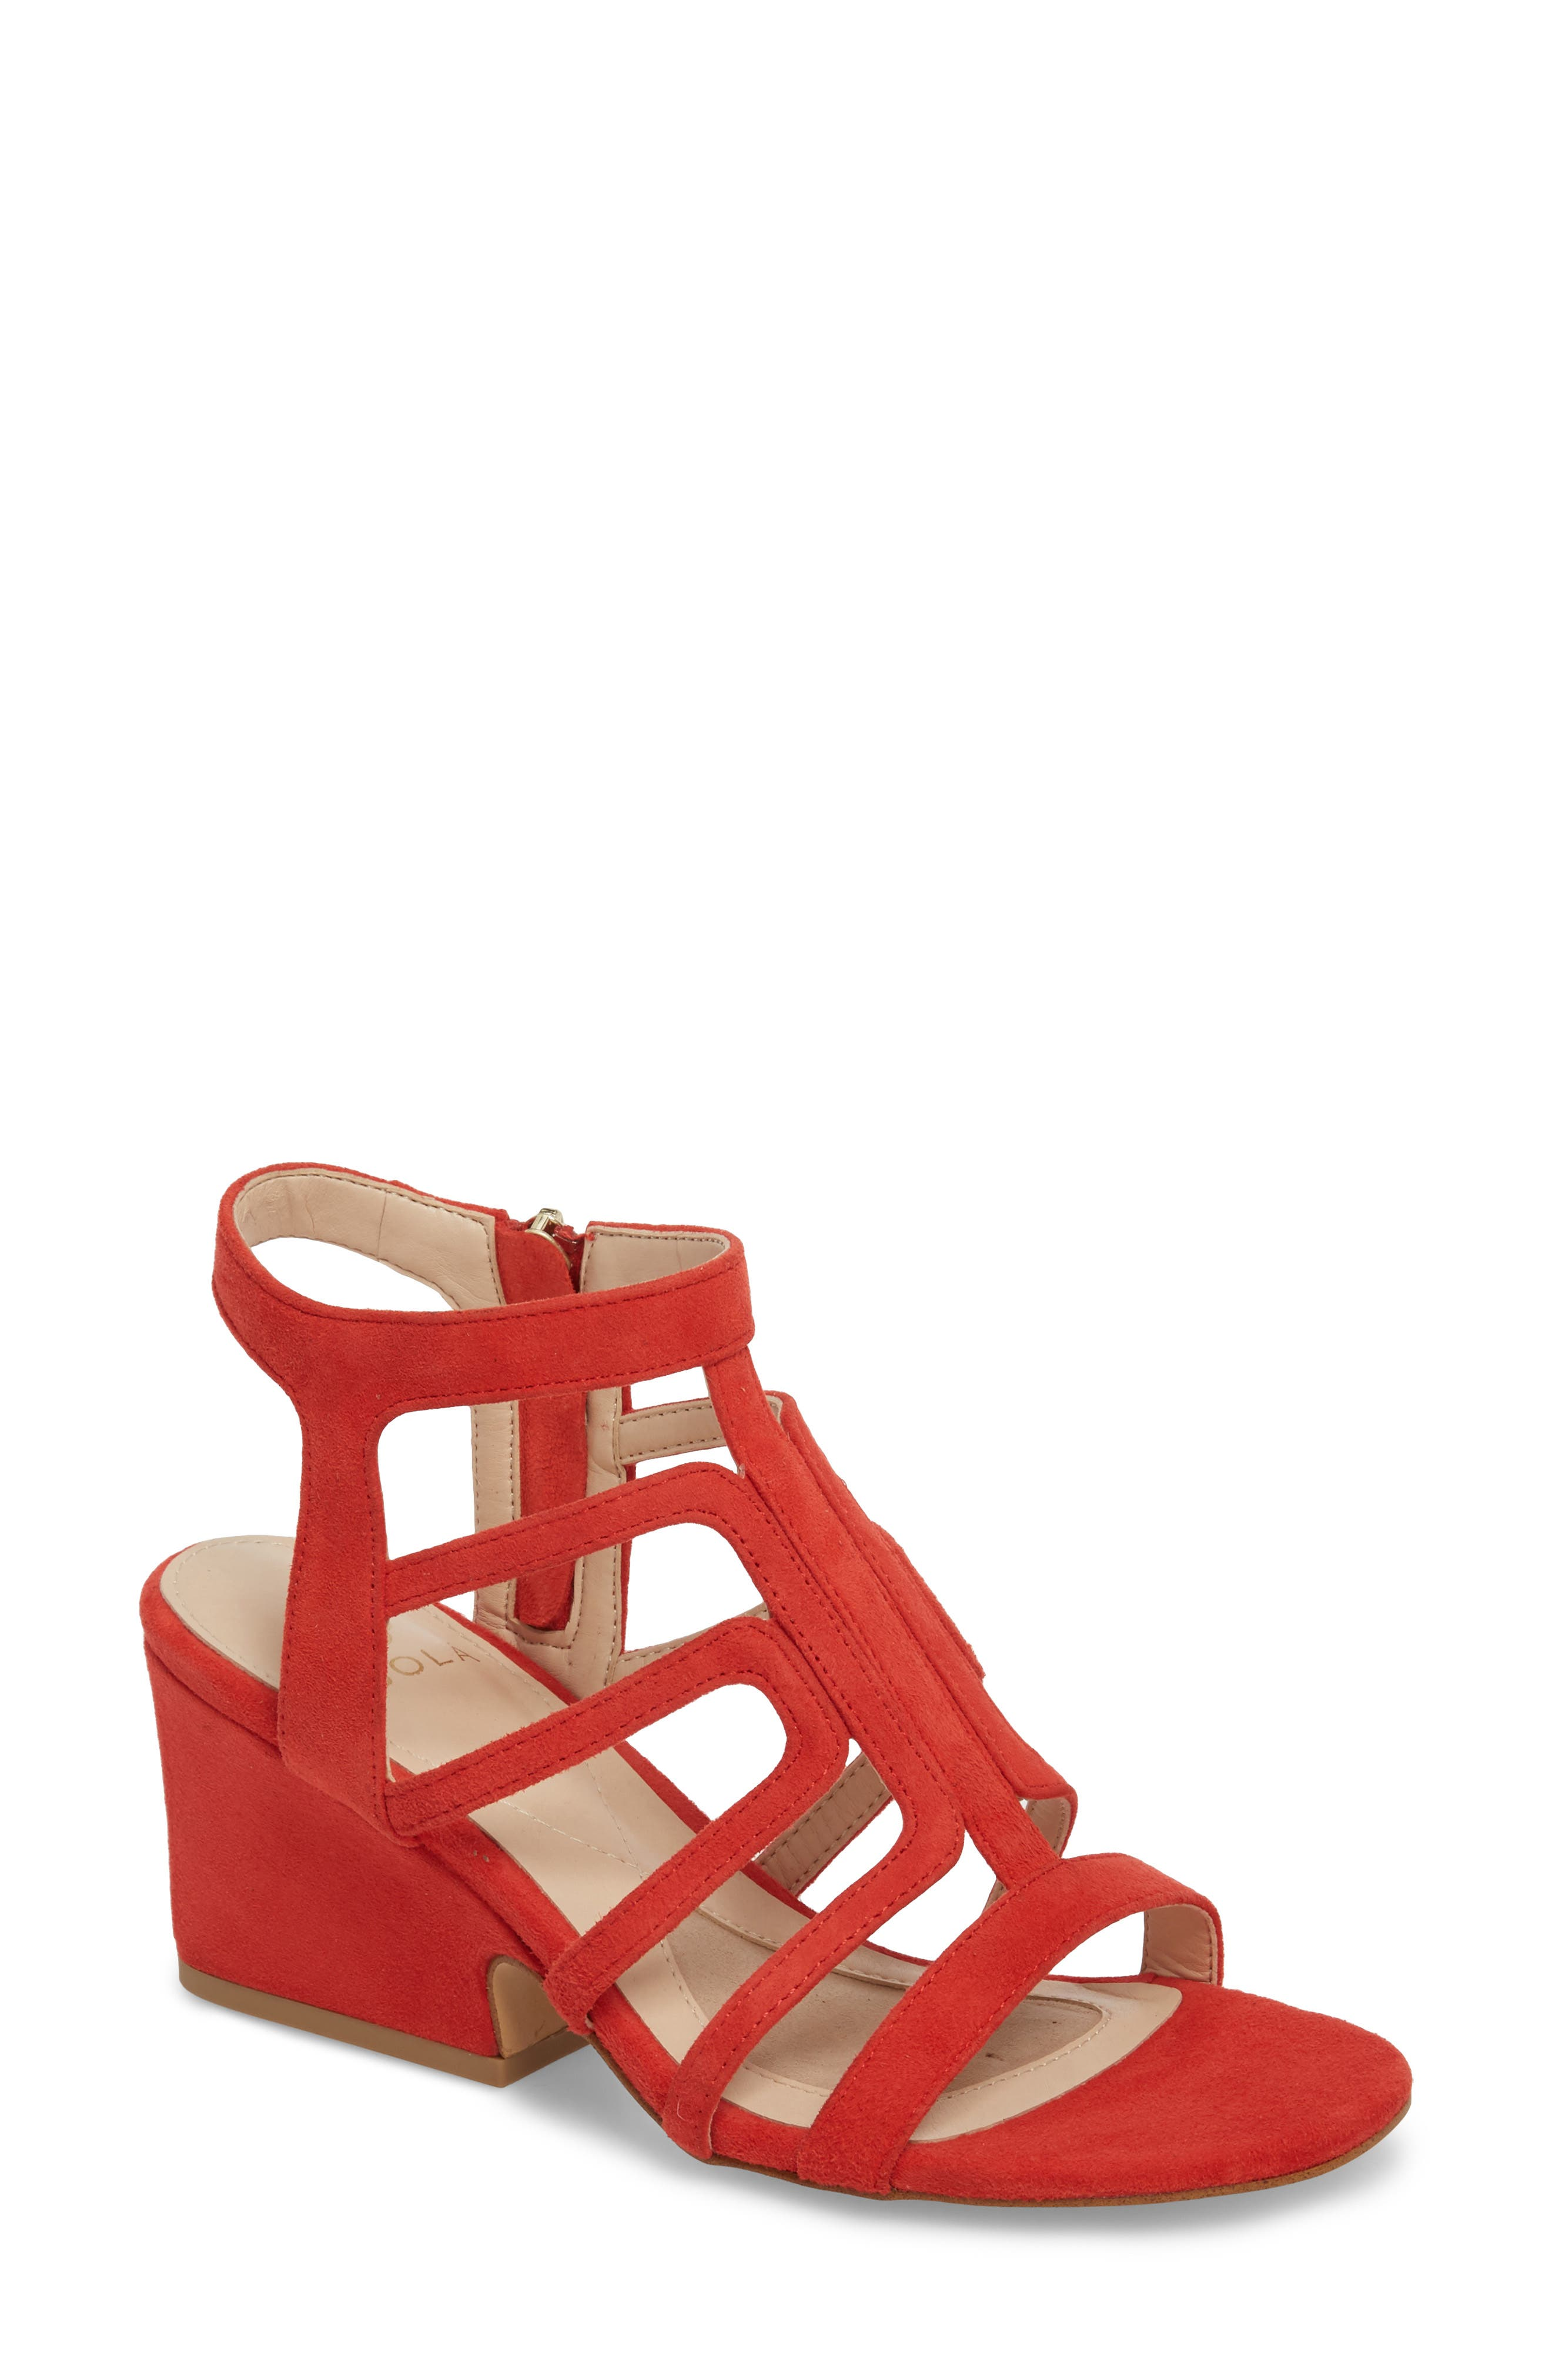 Lina Sandal,                             Main thumbnail 1, color,                             Lipstick Red Suede